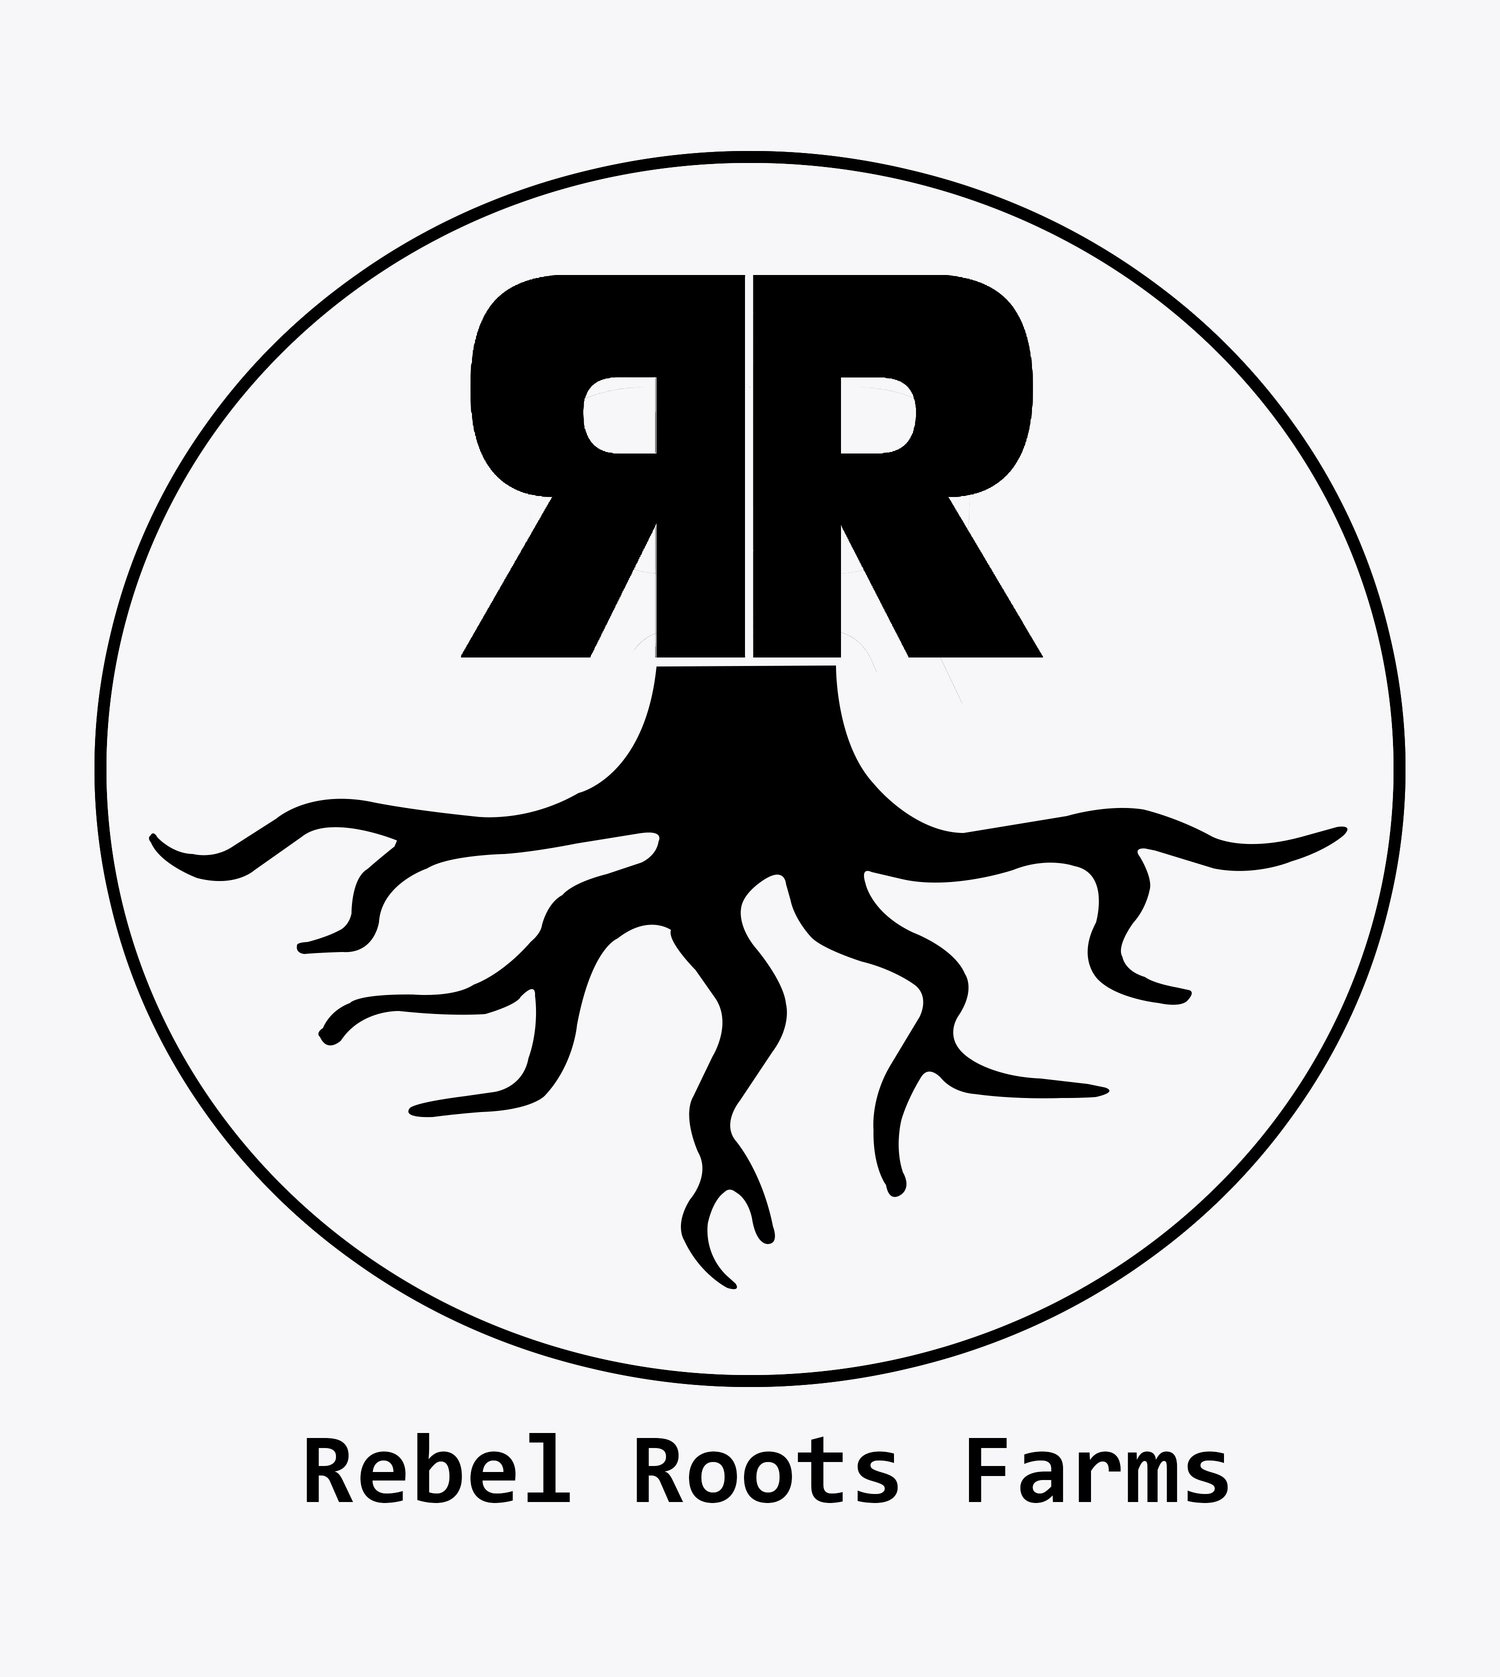 Rebel Roots Farms